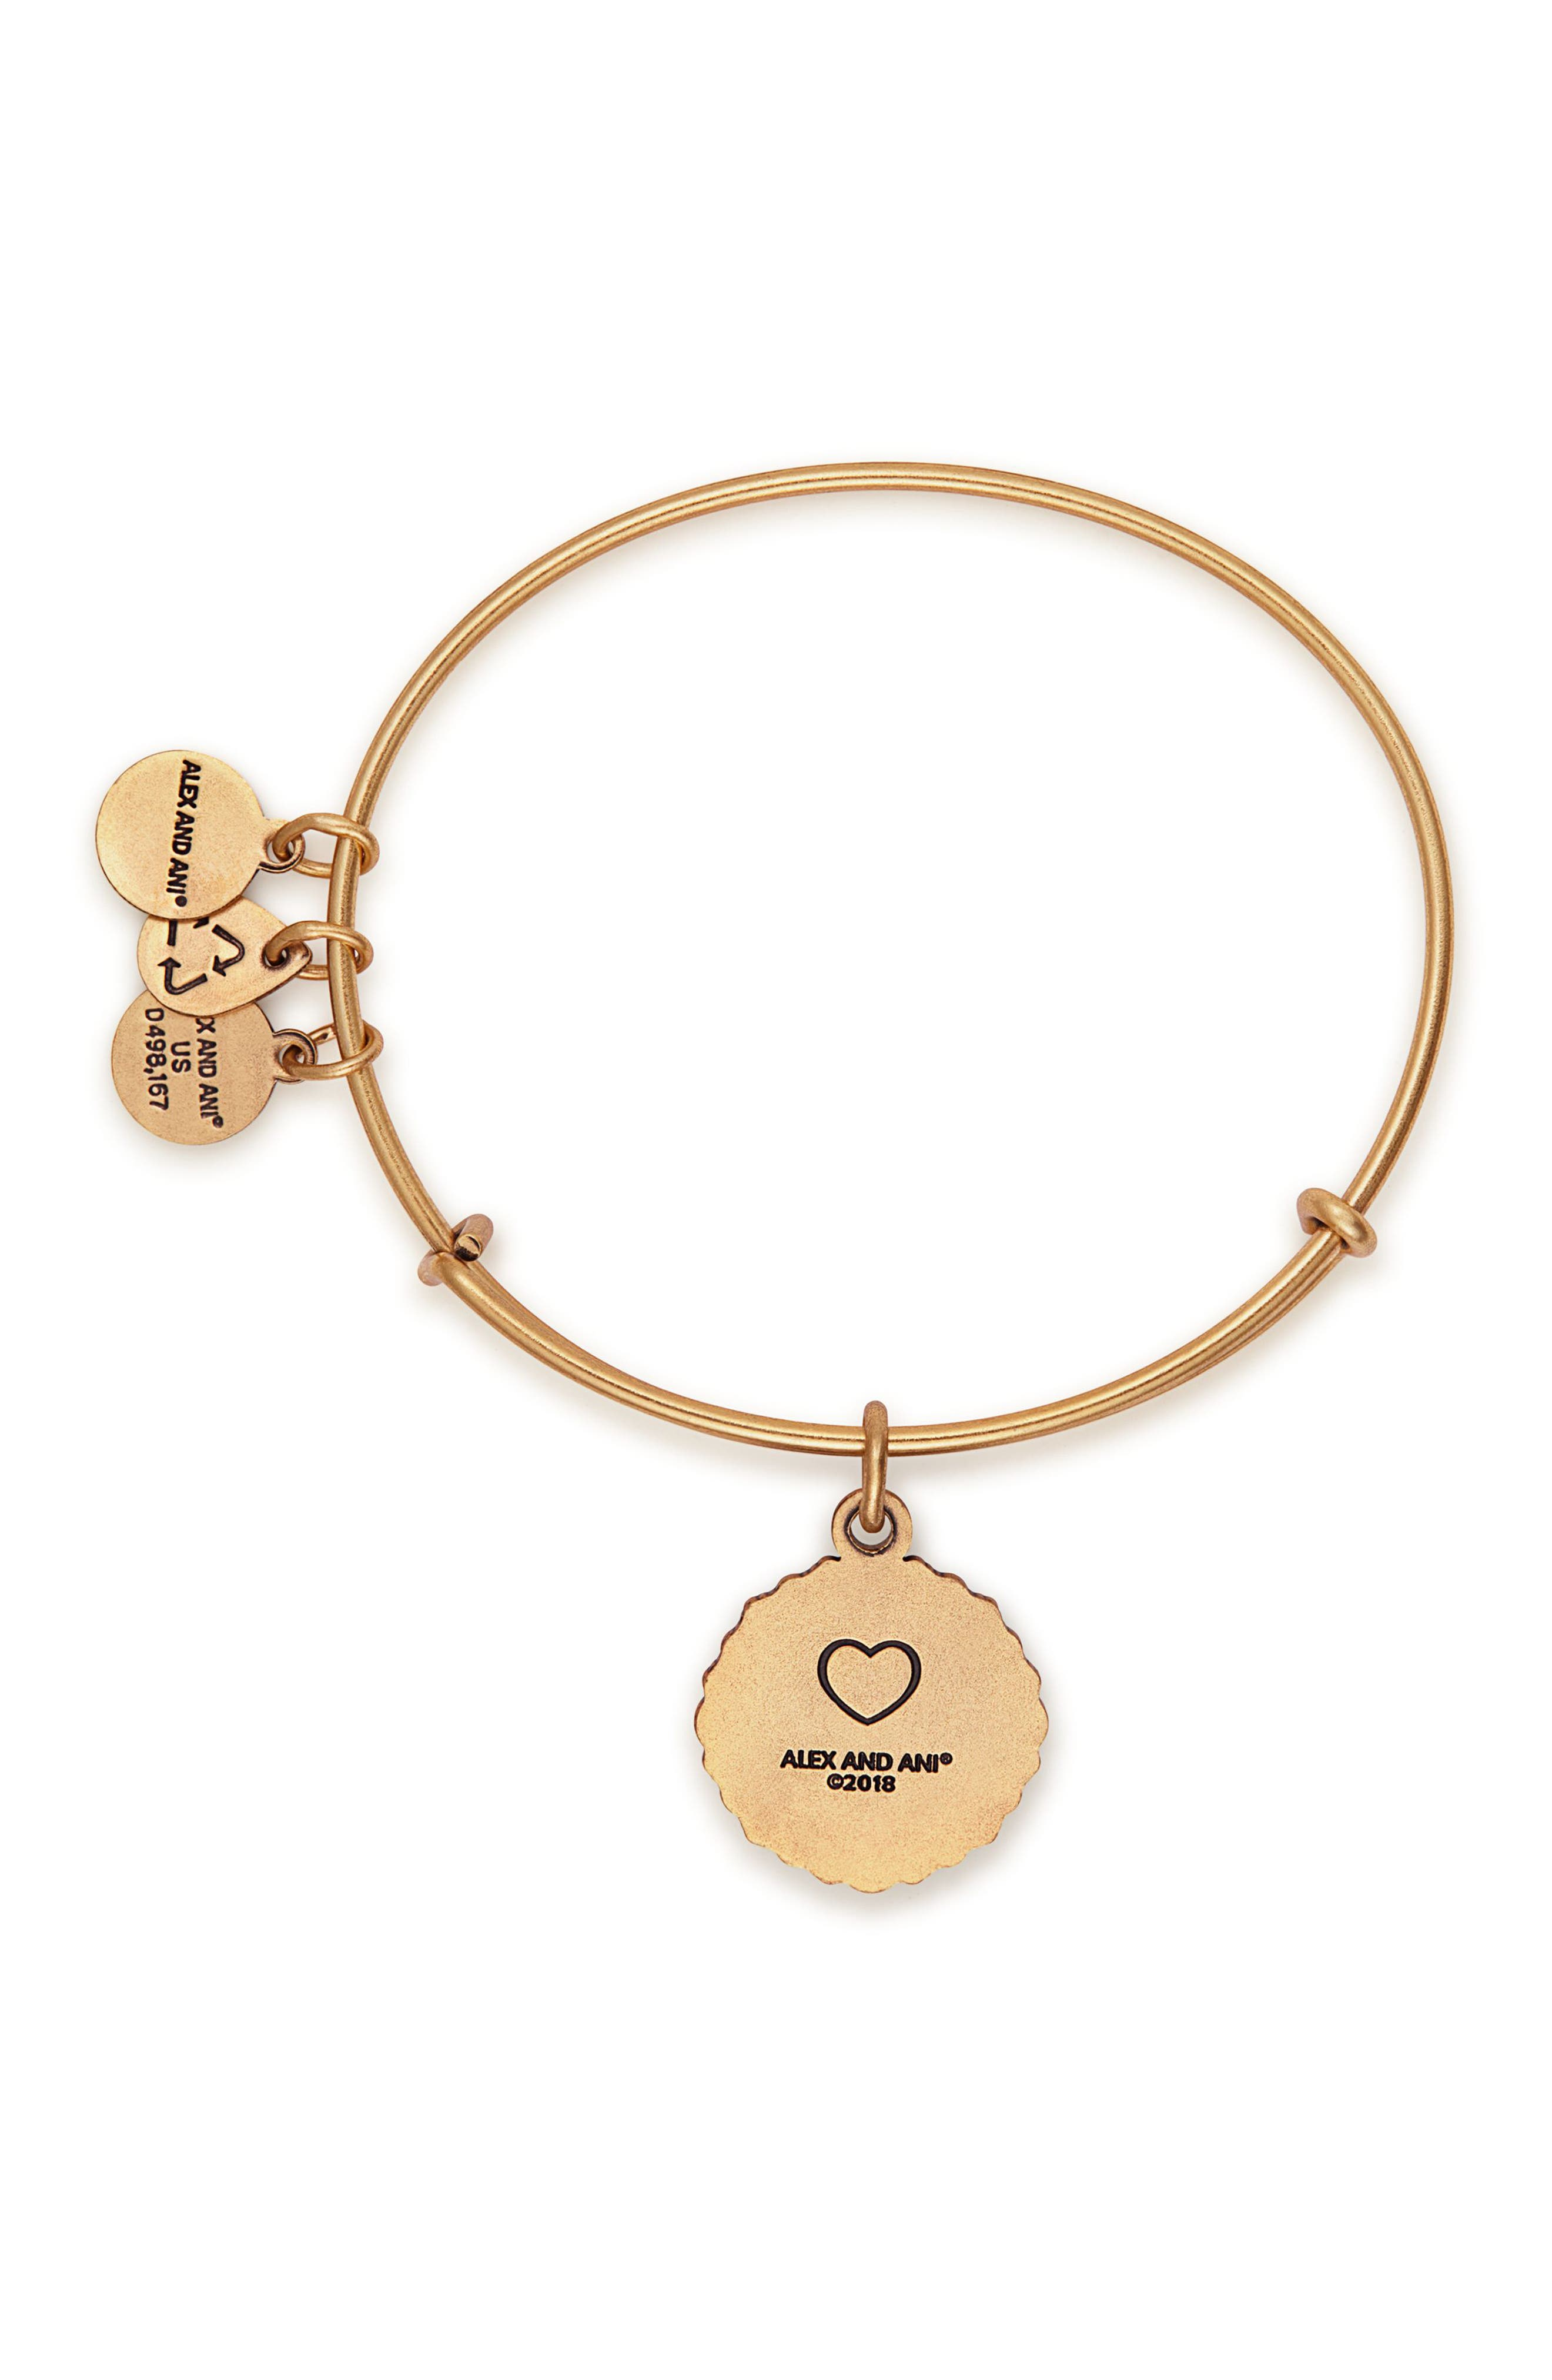 ALEX AND ANI,                             Because I Love You Bracelet,                             Alternate thumbnail 2, color,                             GOLD